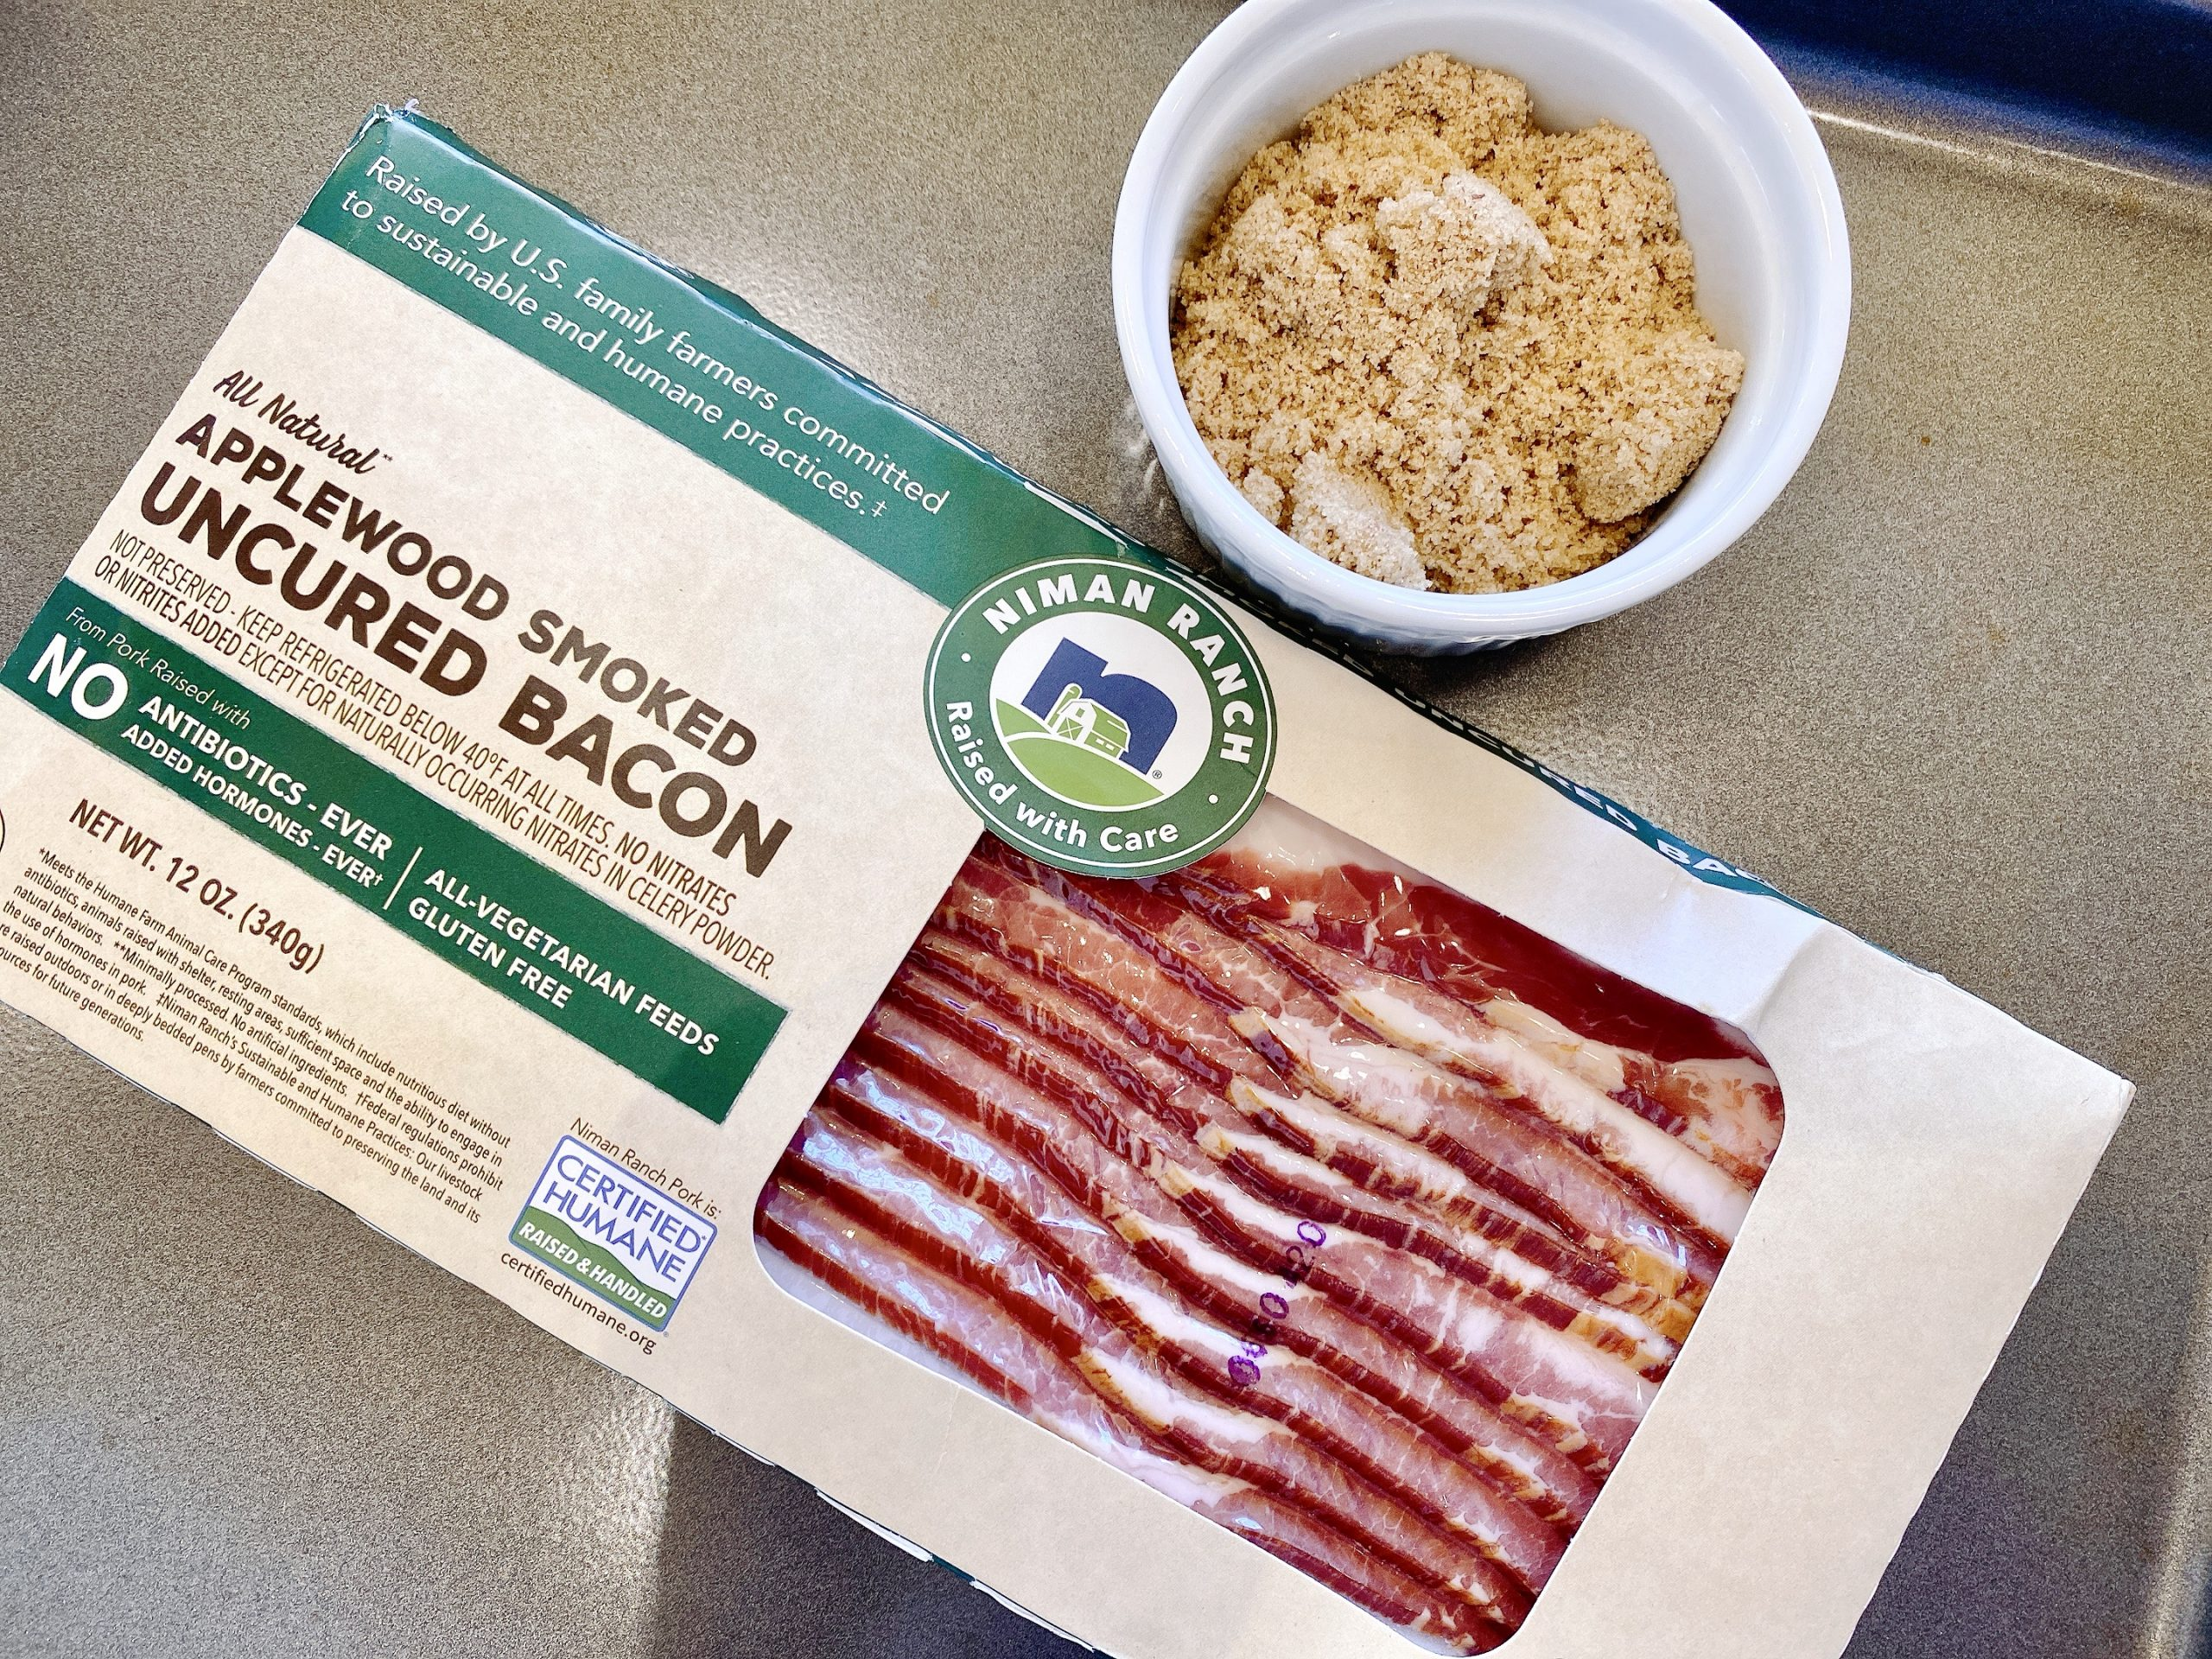 Package of Niman Ranch Applewood Smoked Uncured Bacon on pan with dish of brown sugar